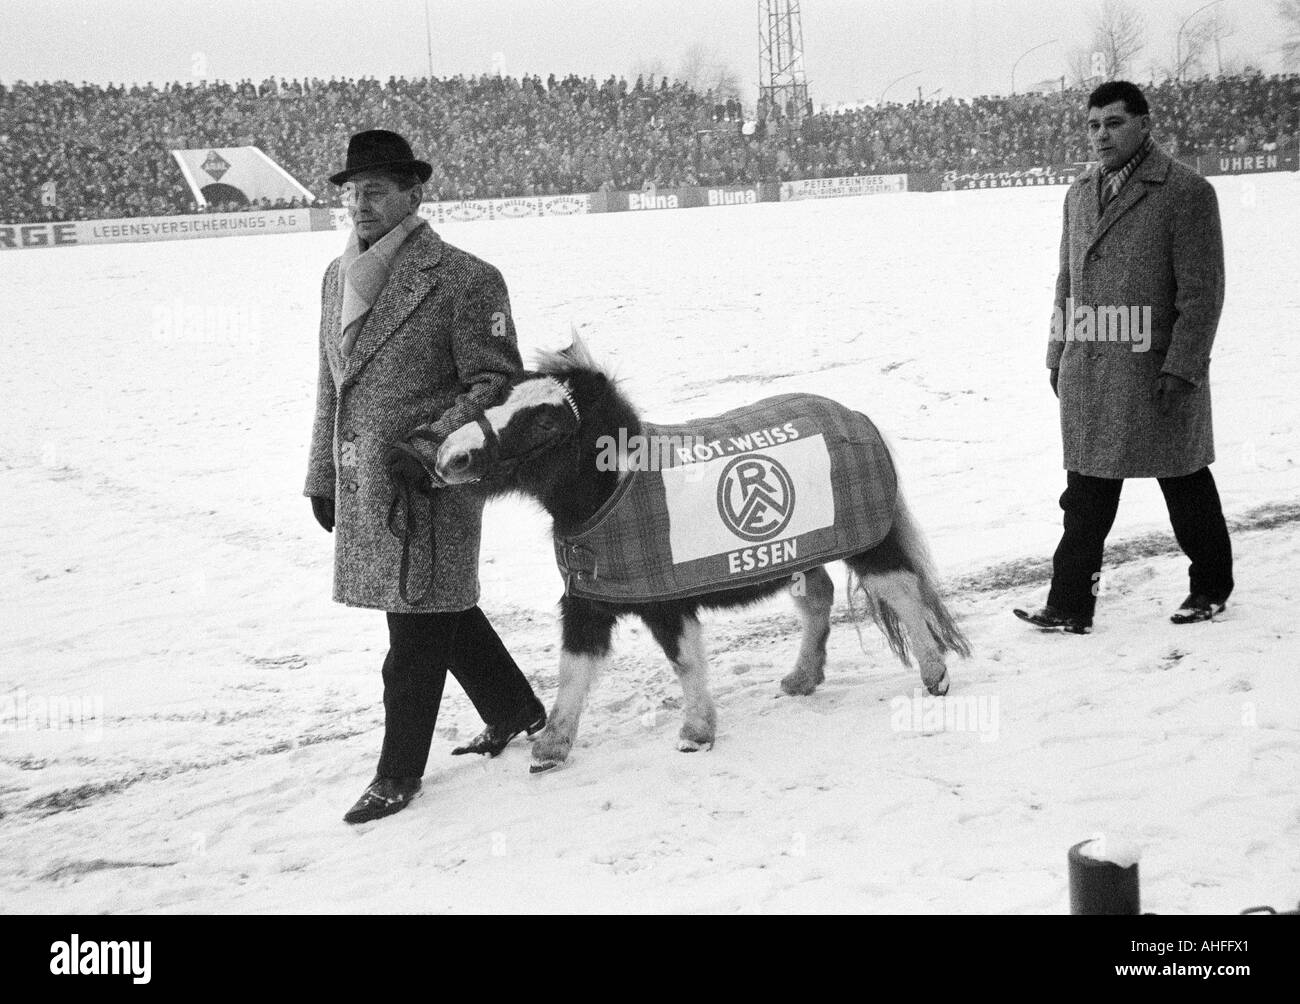 football, Regionalliga West, 1965/1966, Rot-Weiss Essen versus Eintracht Duisburg 2:0, Stadium an der Hafenstrasse in Essen, wintry, the field is snow covered, crowd of spectators, two stewards leading a pony with an emblem of Rot-Weiss Essen as a mascot - Stock Image